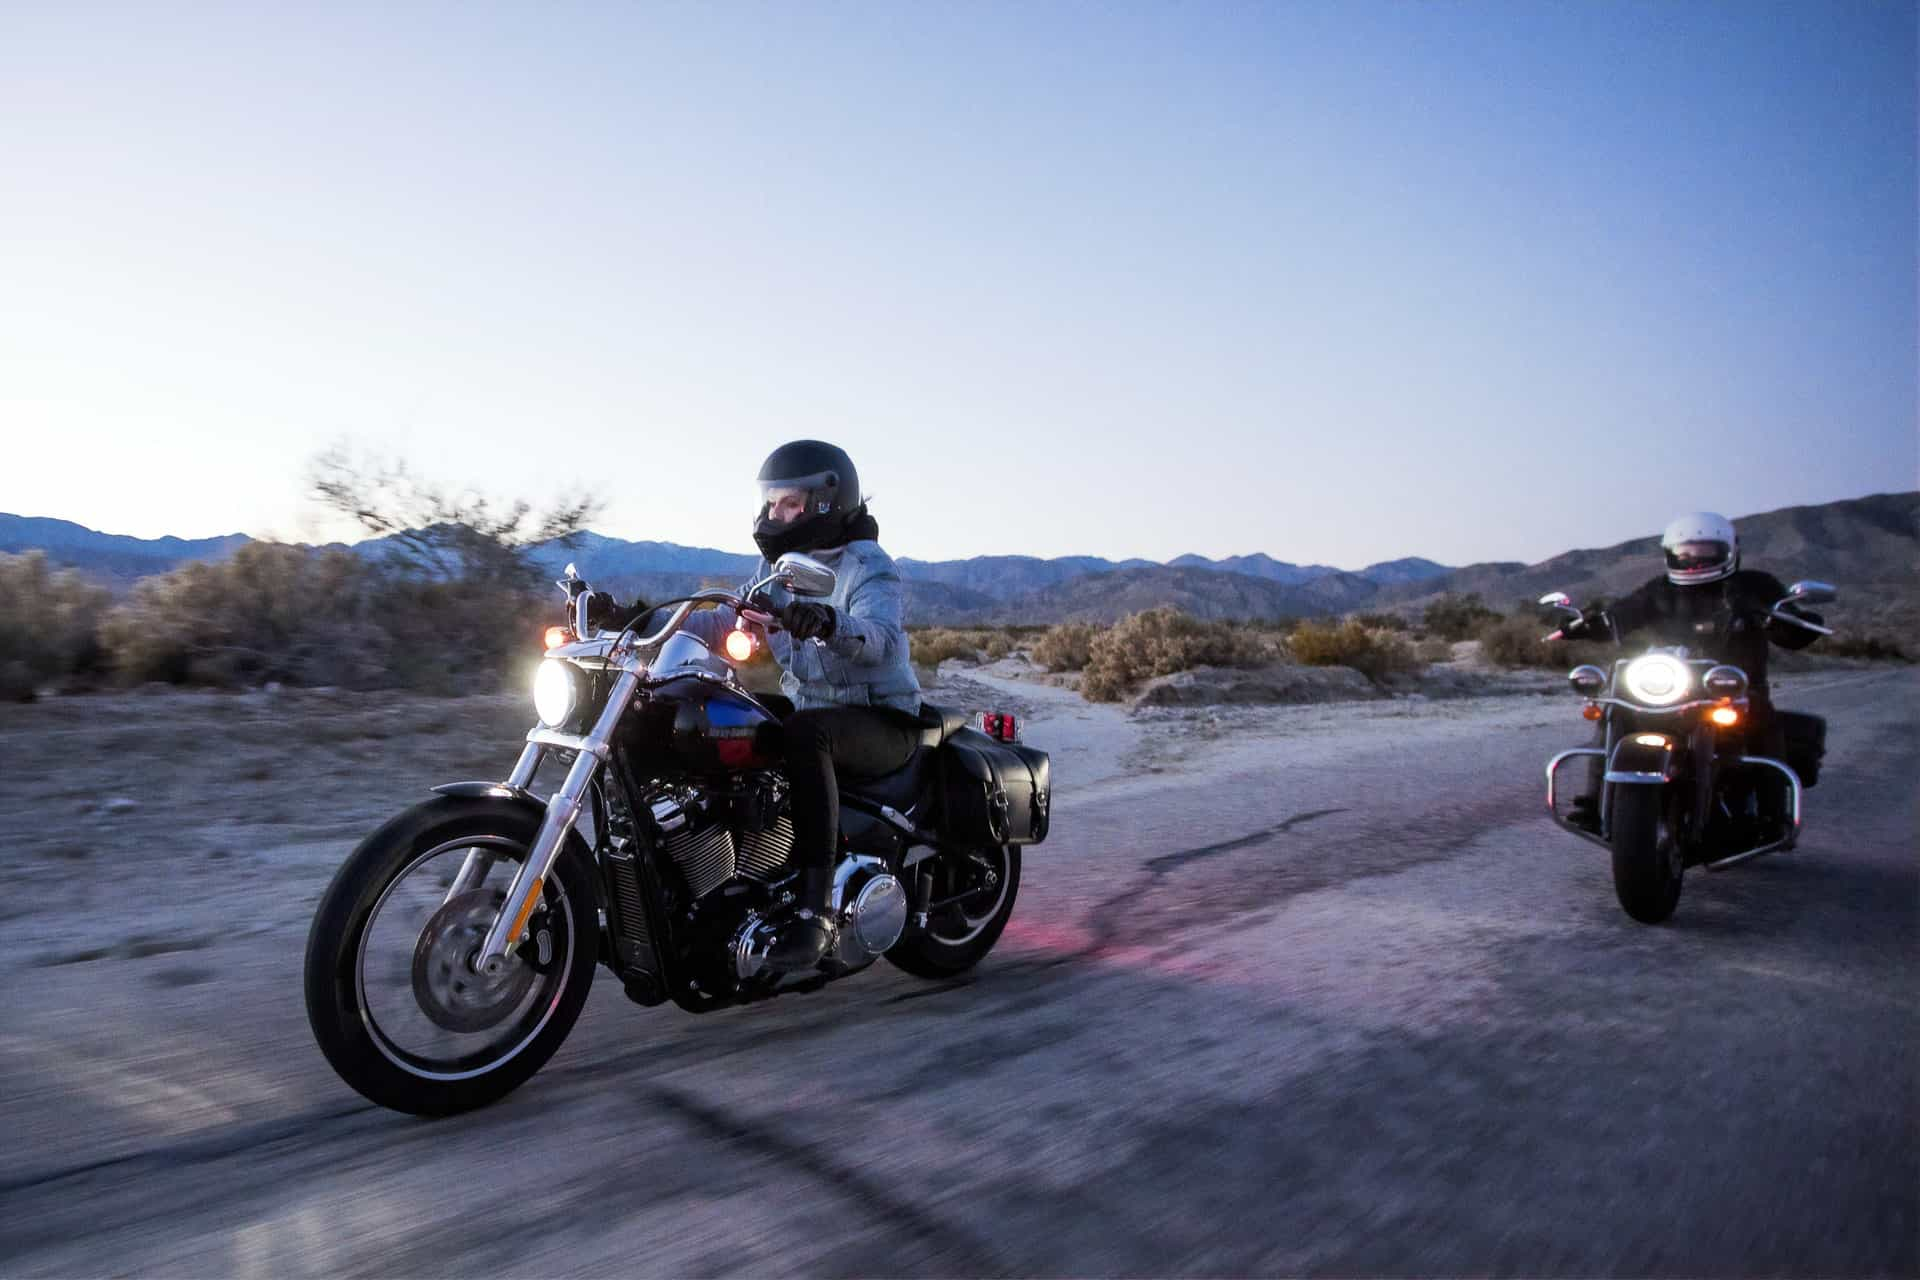 two people riding motorcycles